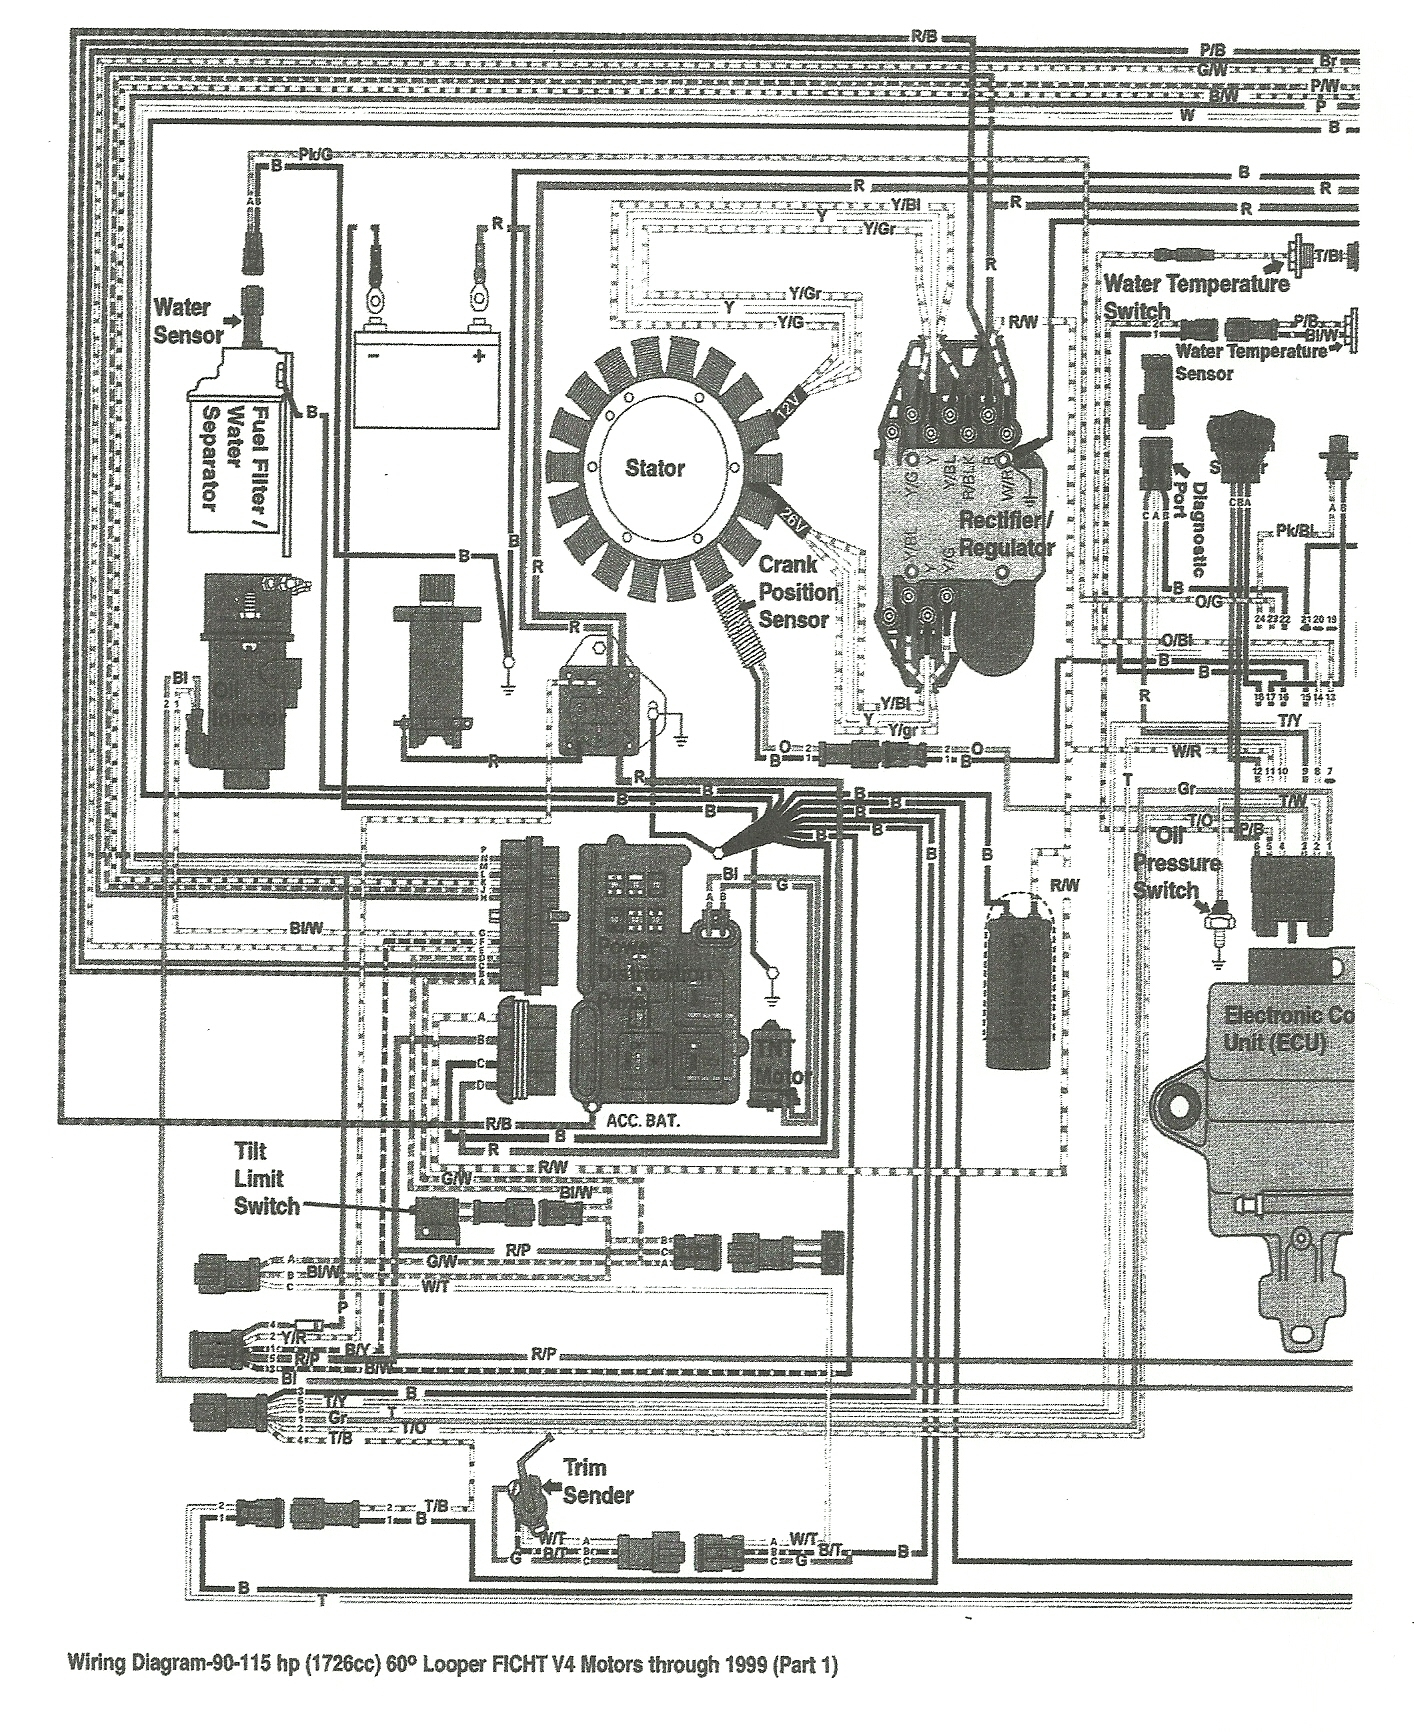 115 Hp Evinrude Wiring Harness Diagram | Wiring Diagram - Evinrude Wiring Harness Diagram